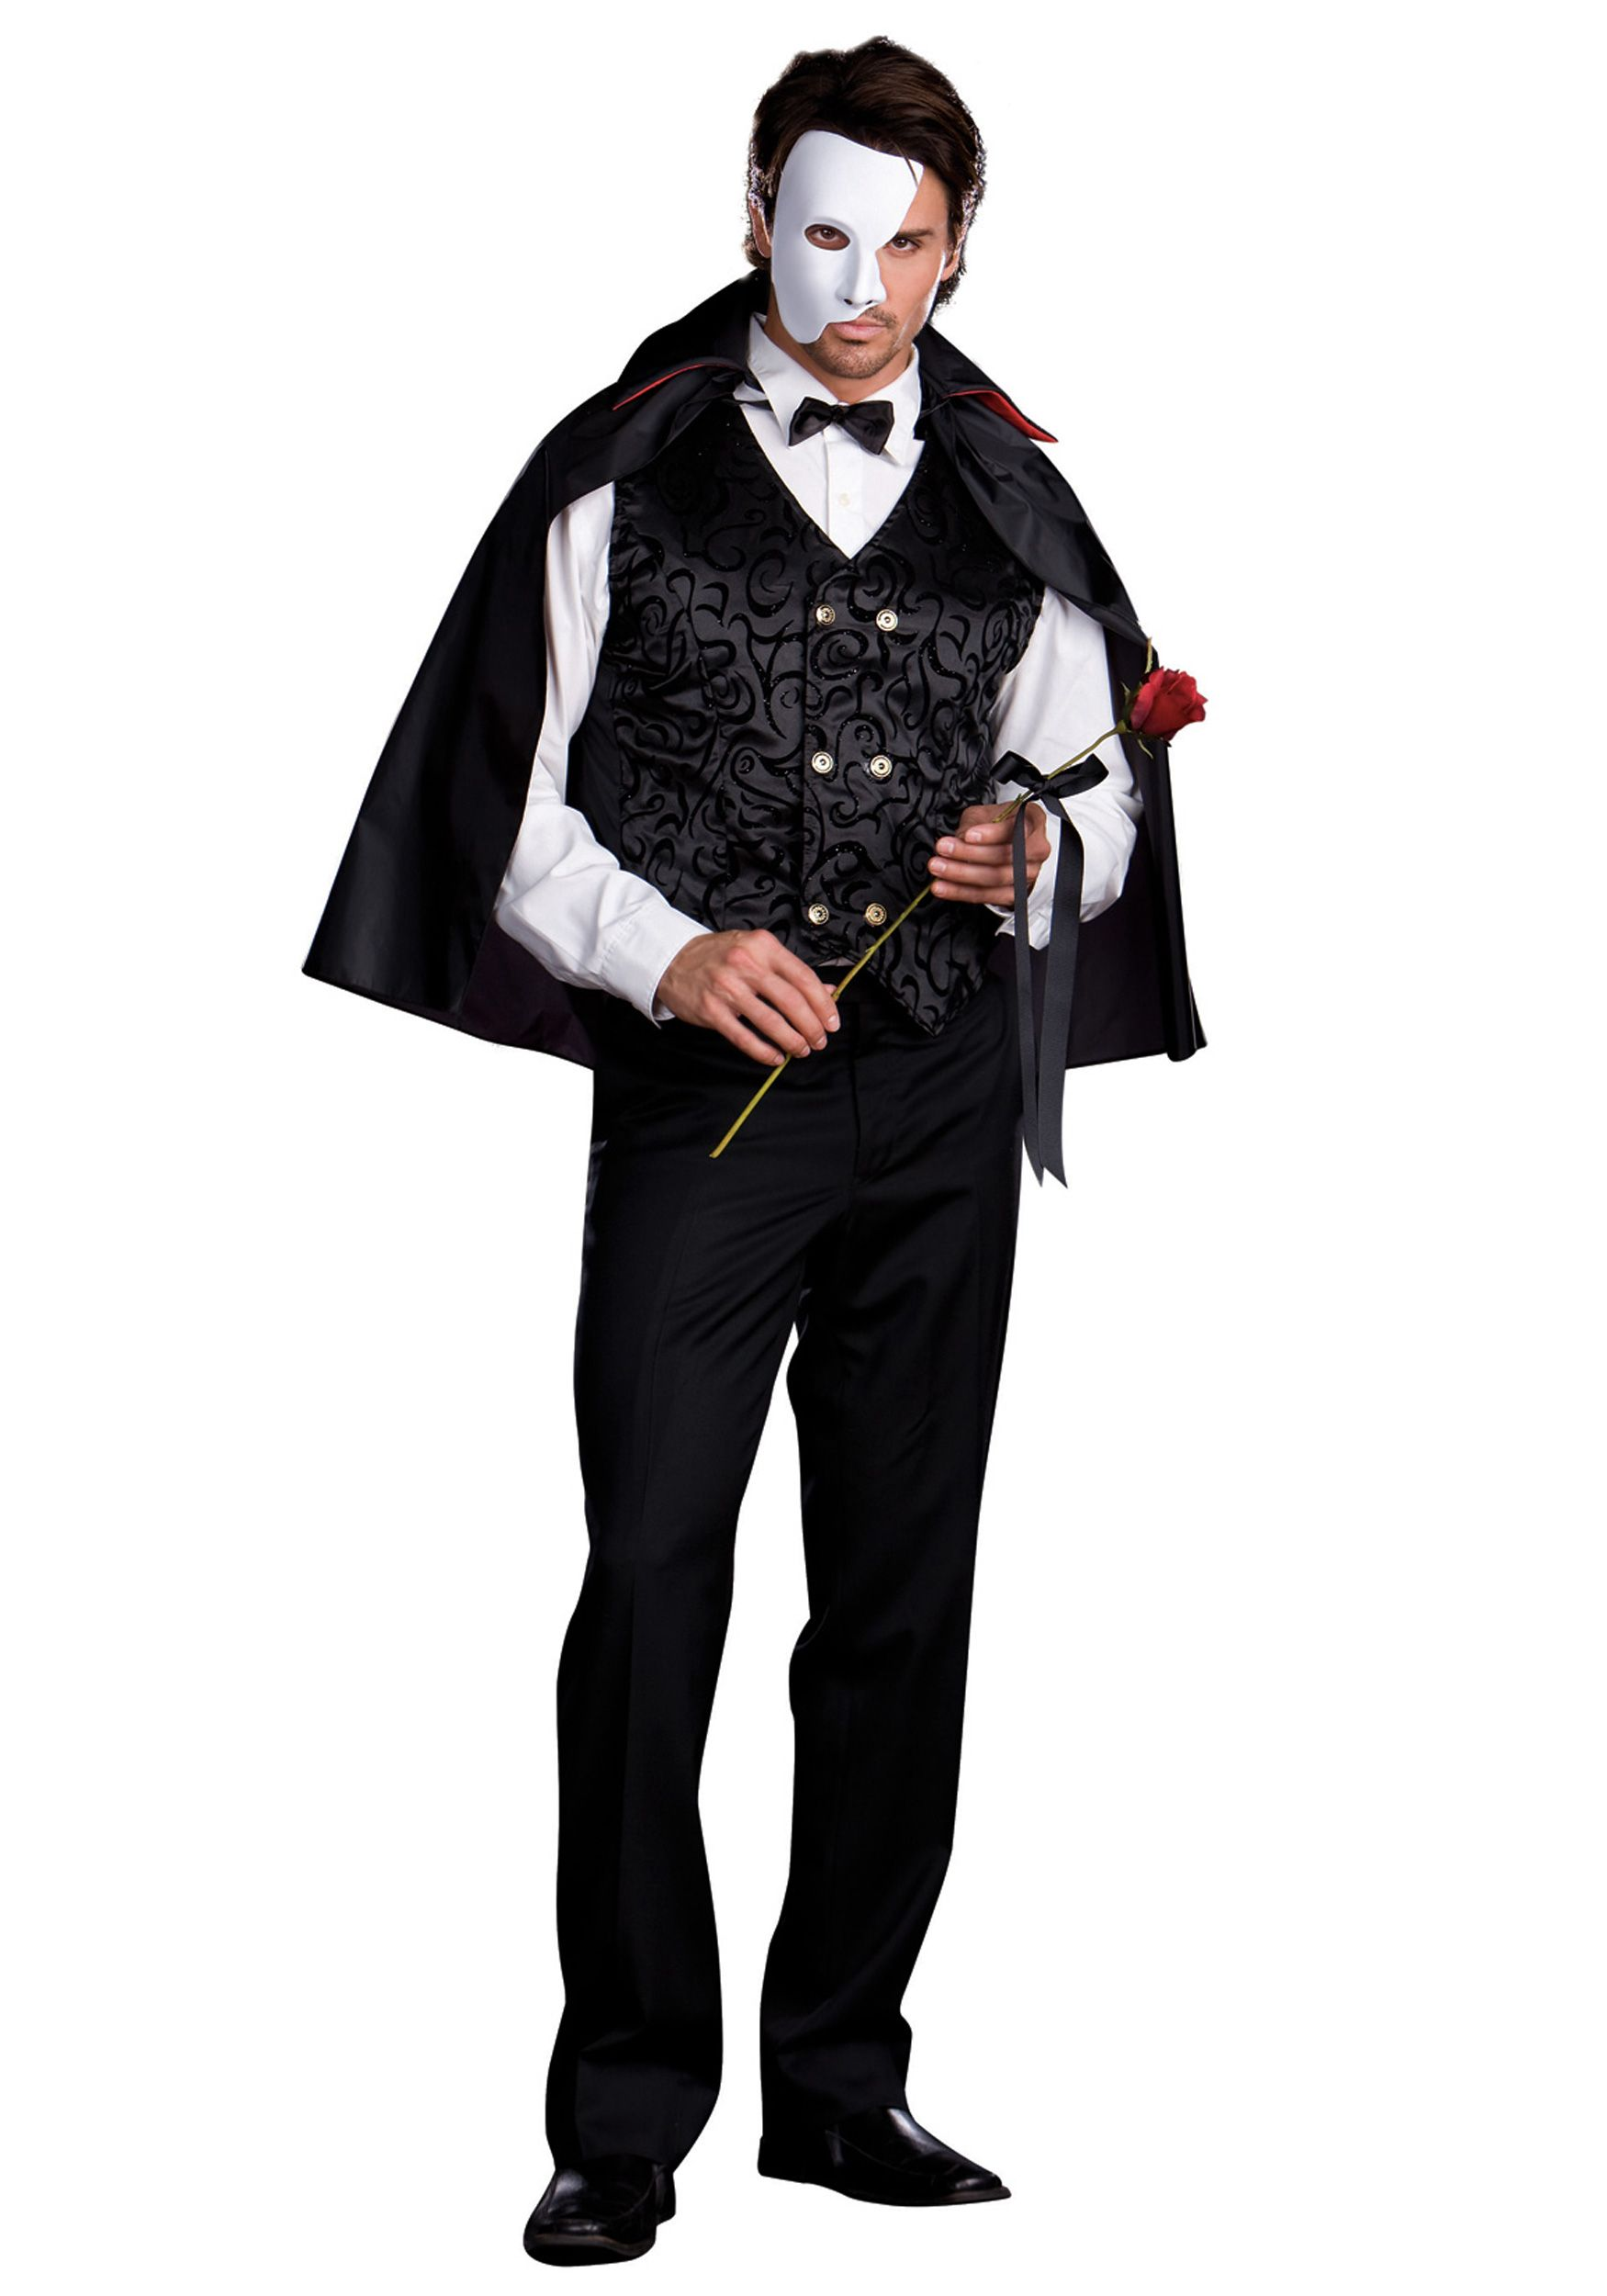 Image detail for -Adult Phantom Gentleman Costume - Masquerade Costumes for Men  sc 1 st  Pinterest & Image detail for -Adult Phantom Gentleman Costume - Masquerade ...